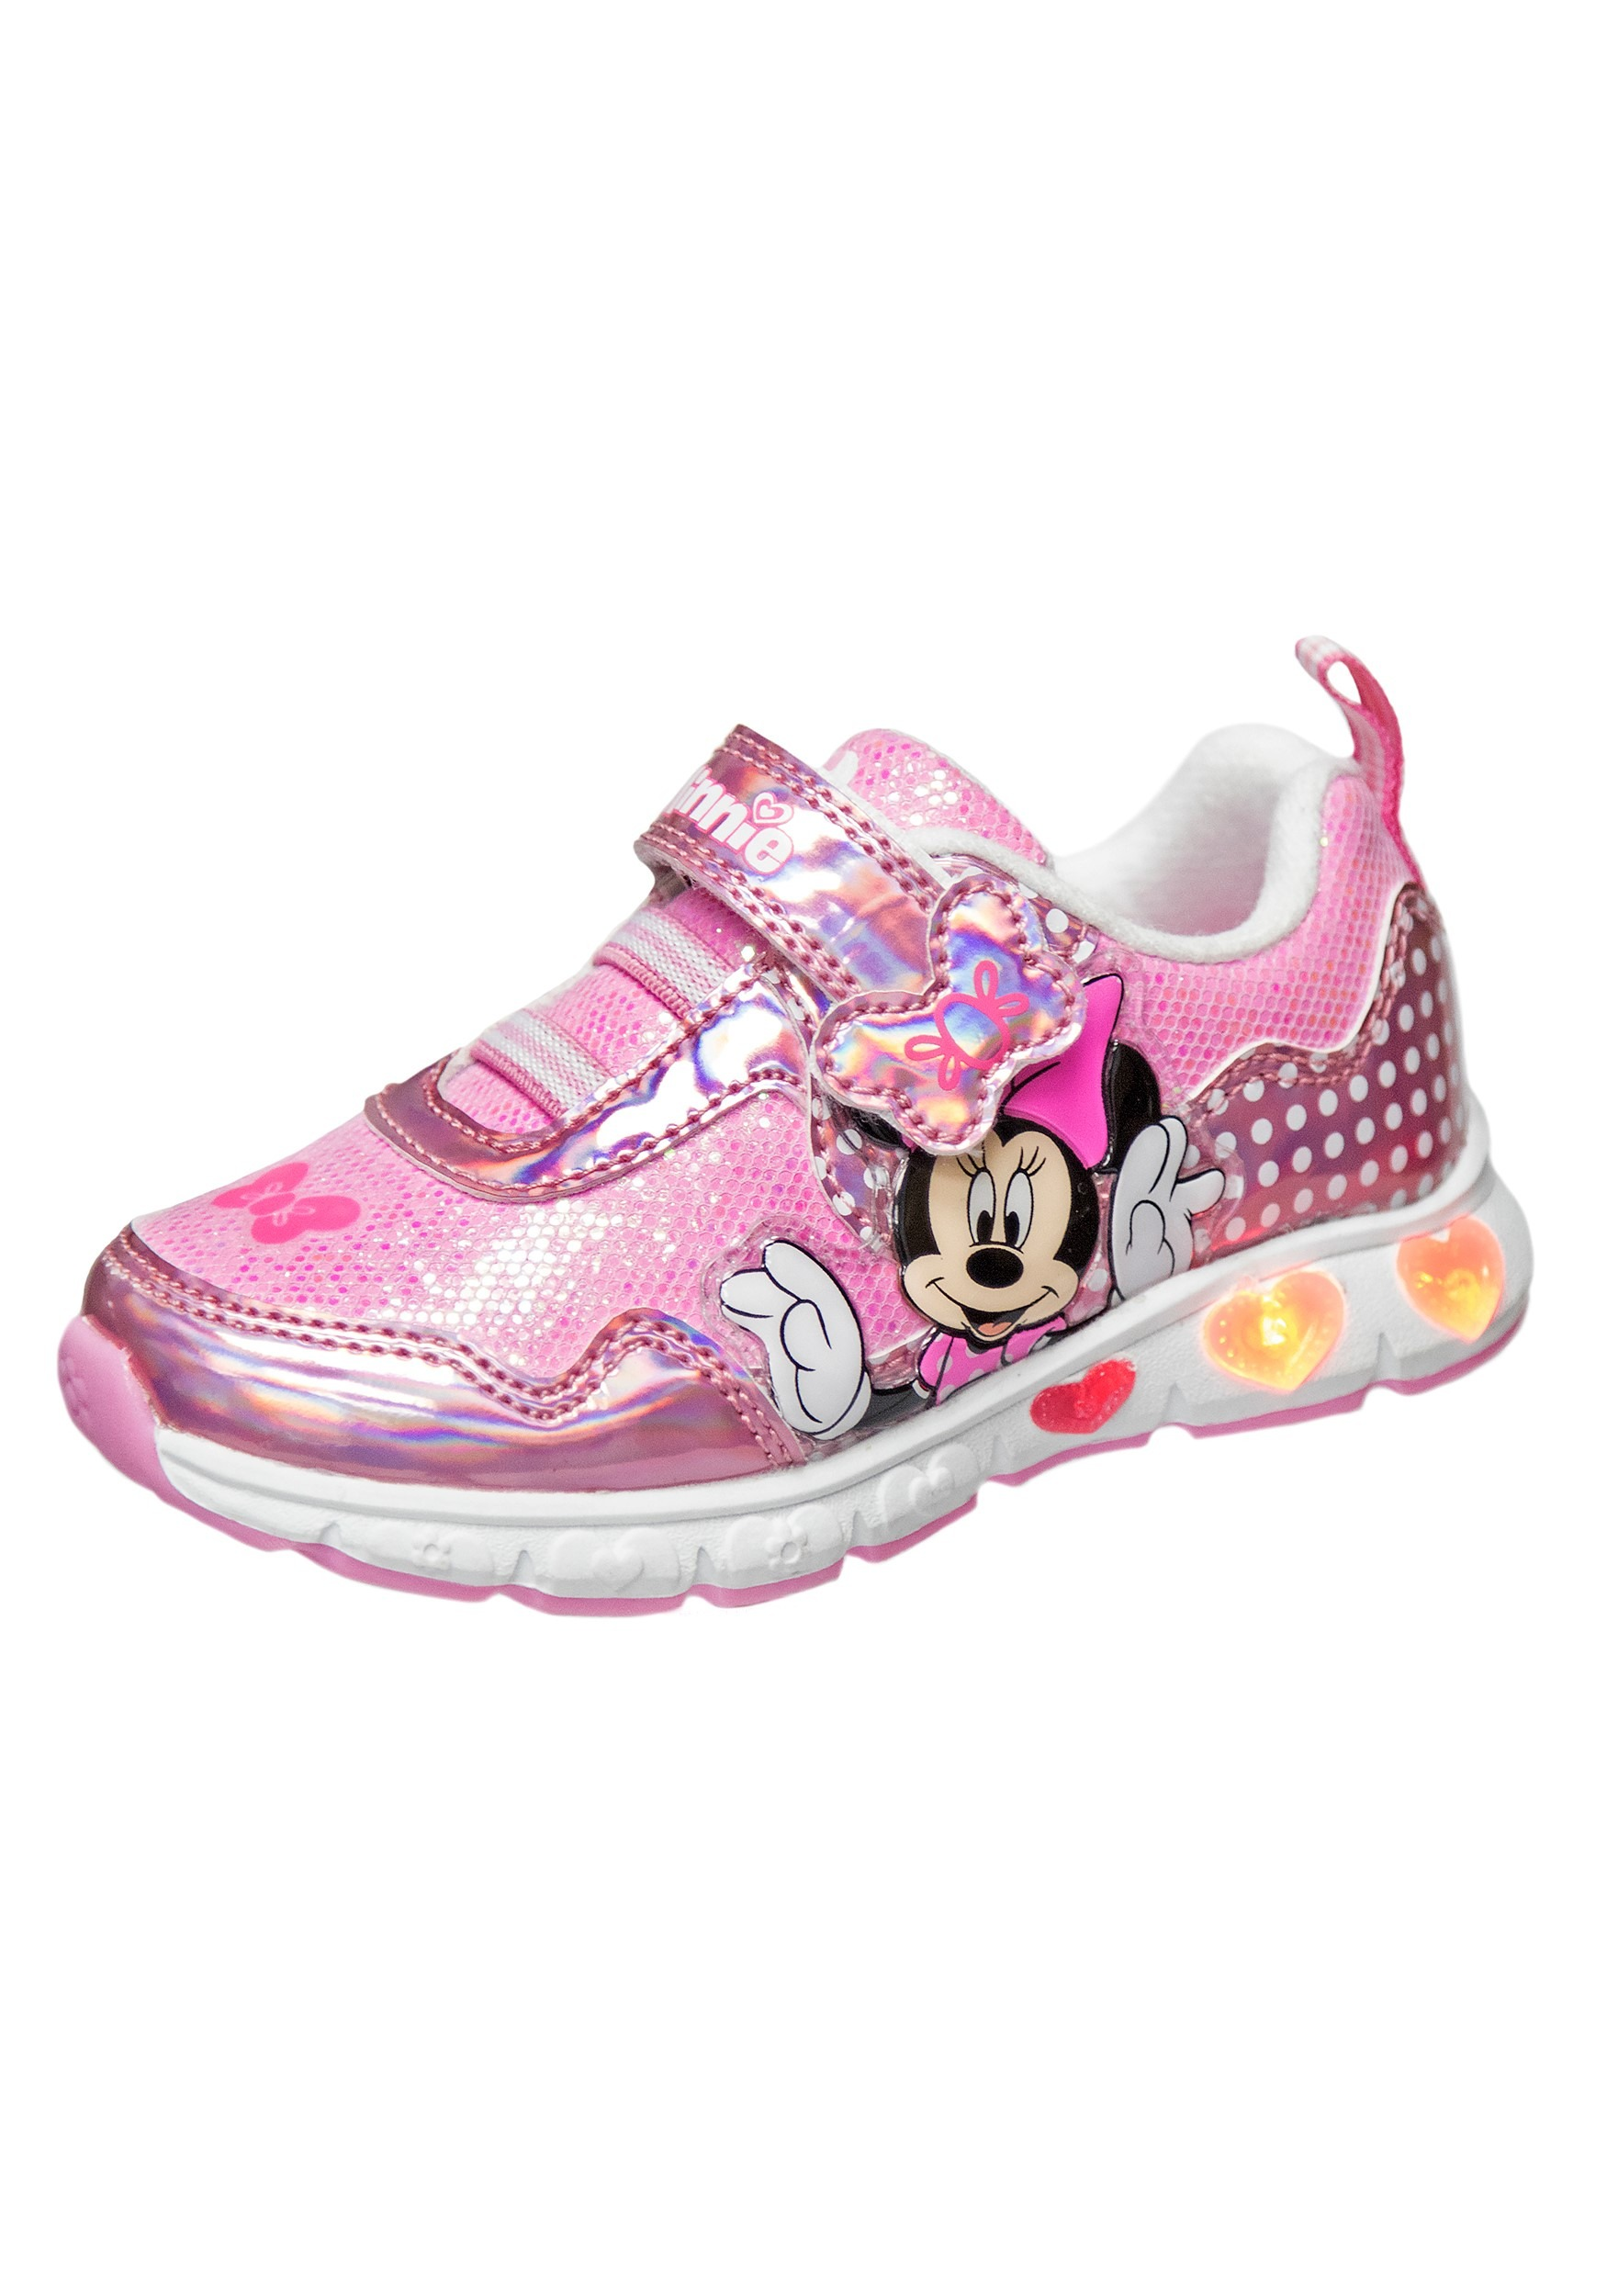 Disney Minnie Mouse Pink Girls Sneakers